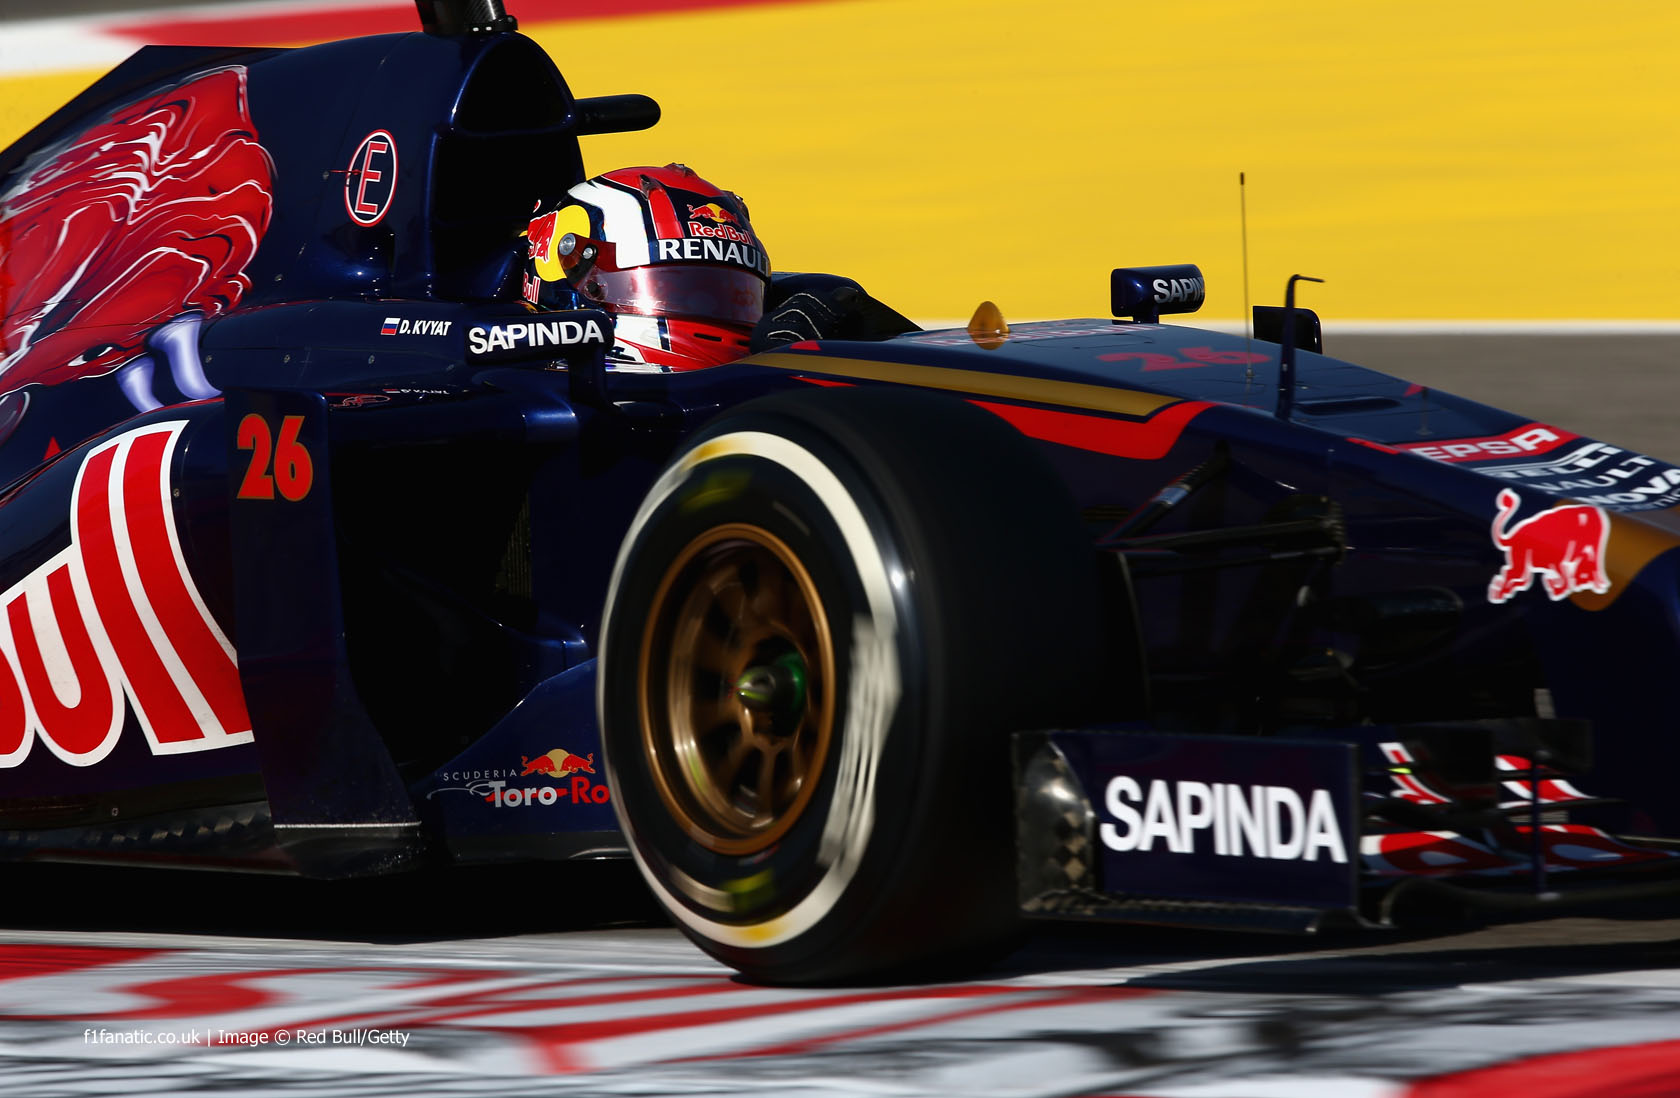 Daniil Kvyat, Toro Rosso, Bahrain International Circuit, 2014